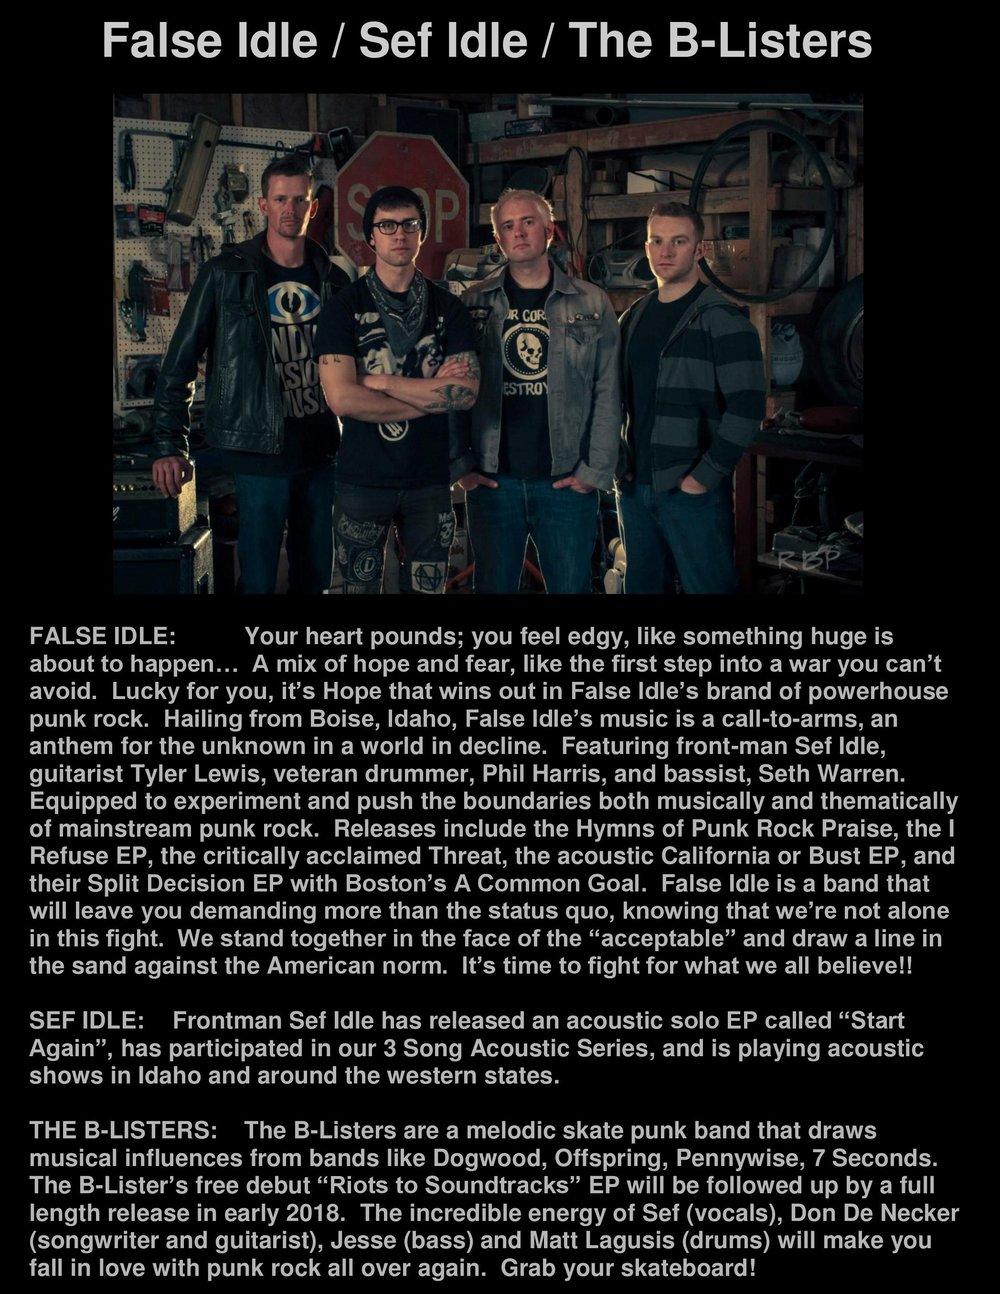 False Idle Sef Idle B-Listers 170711-page-001 CROP.jpg